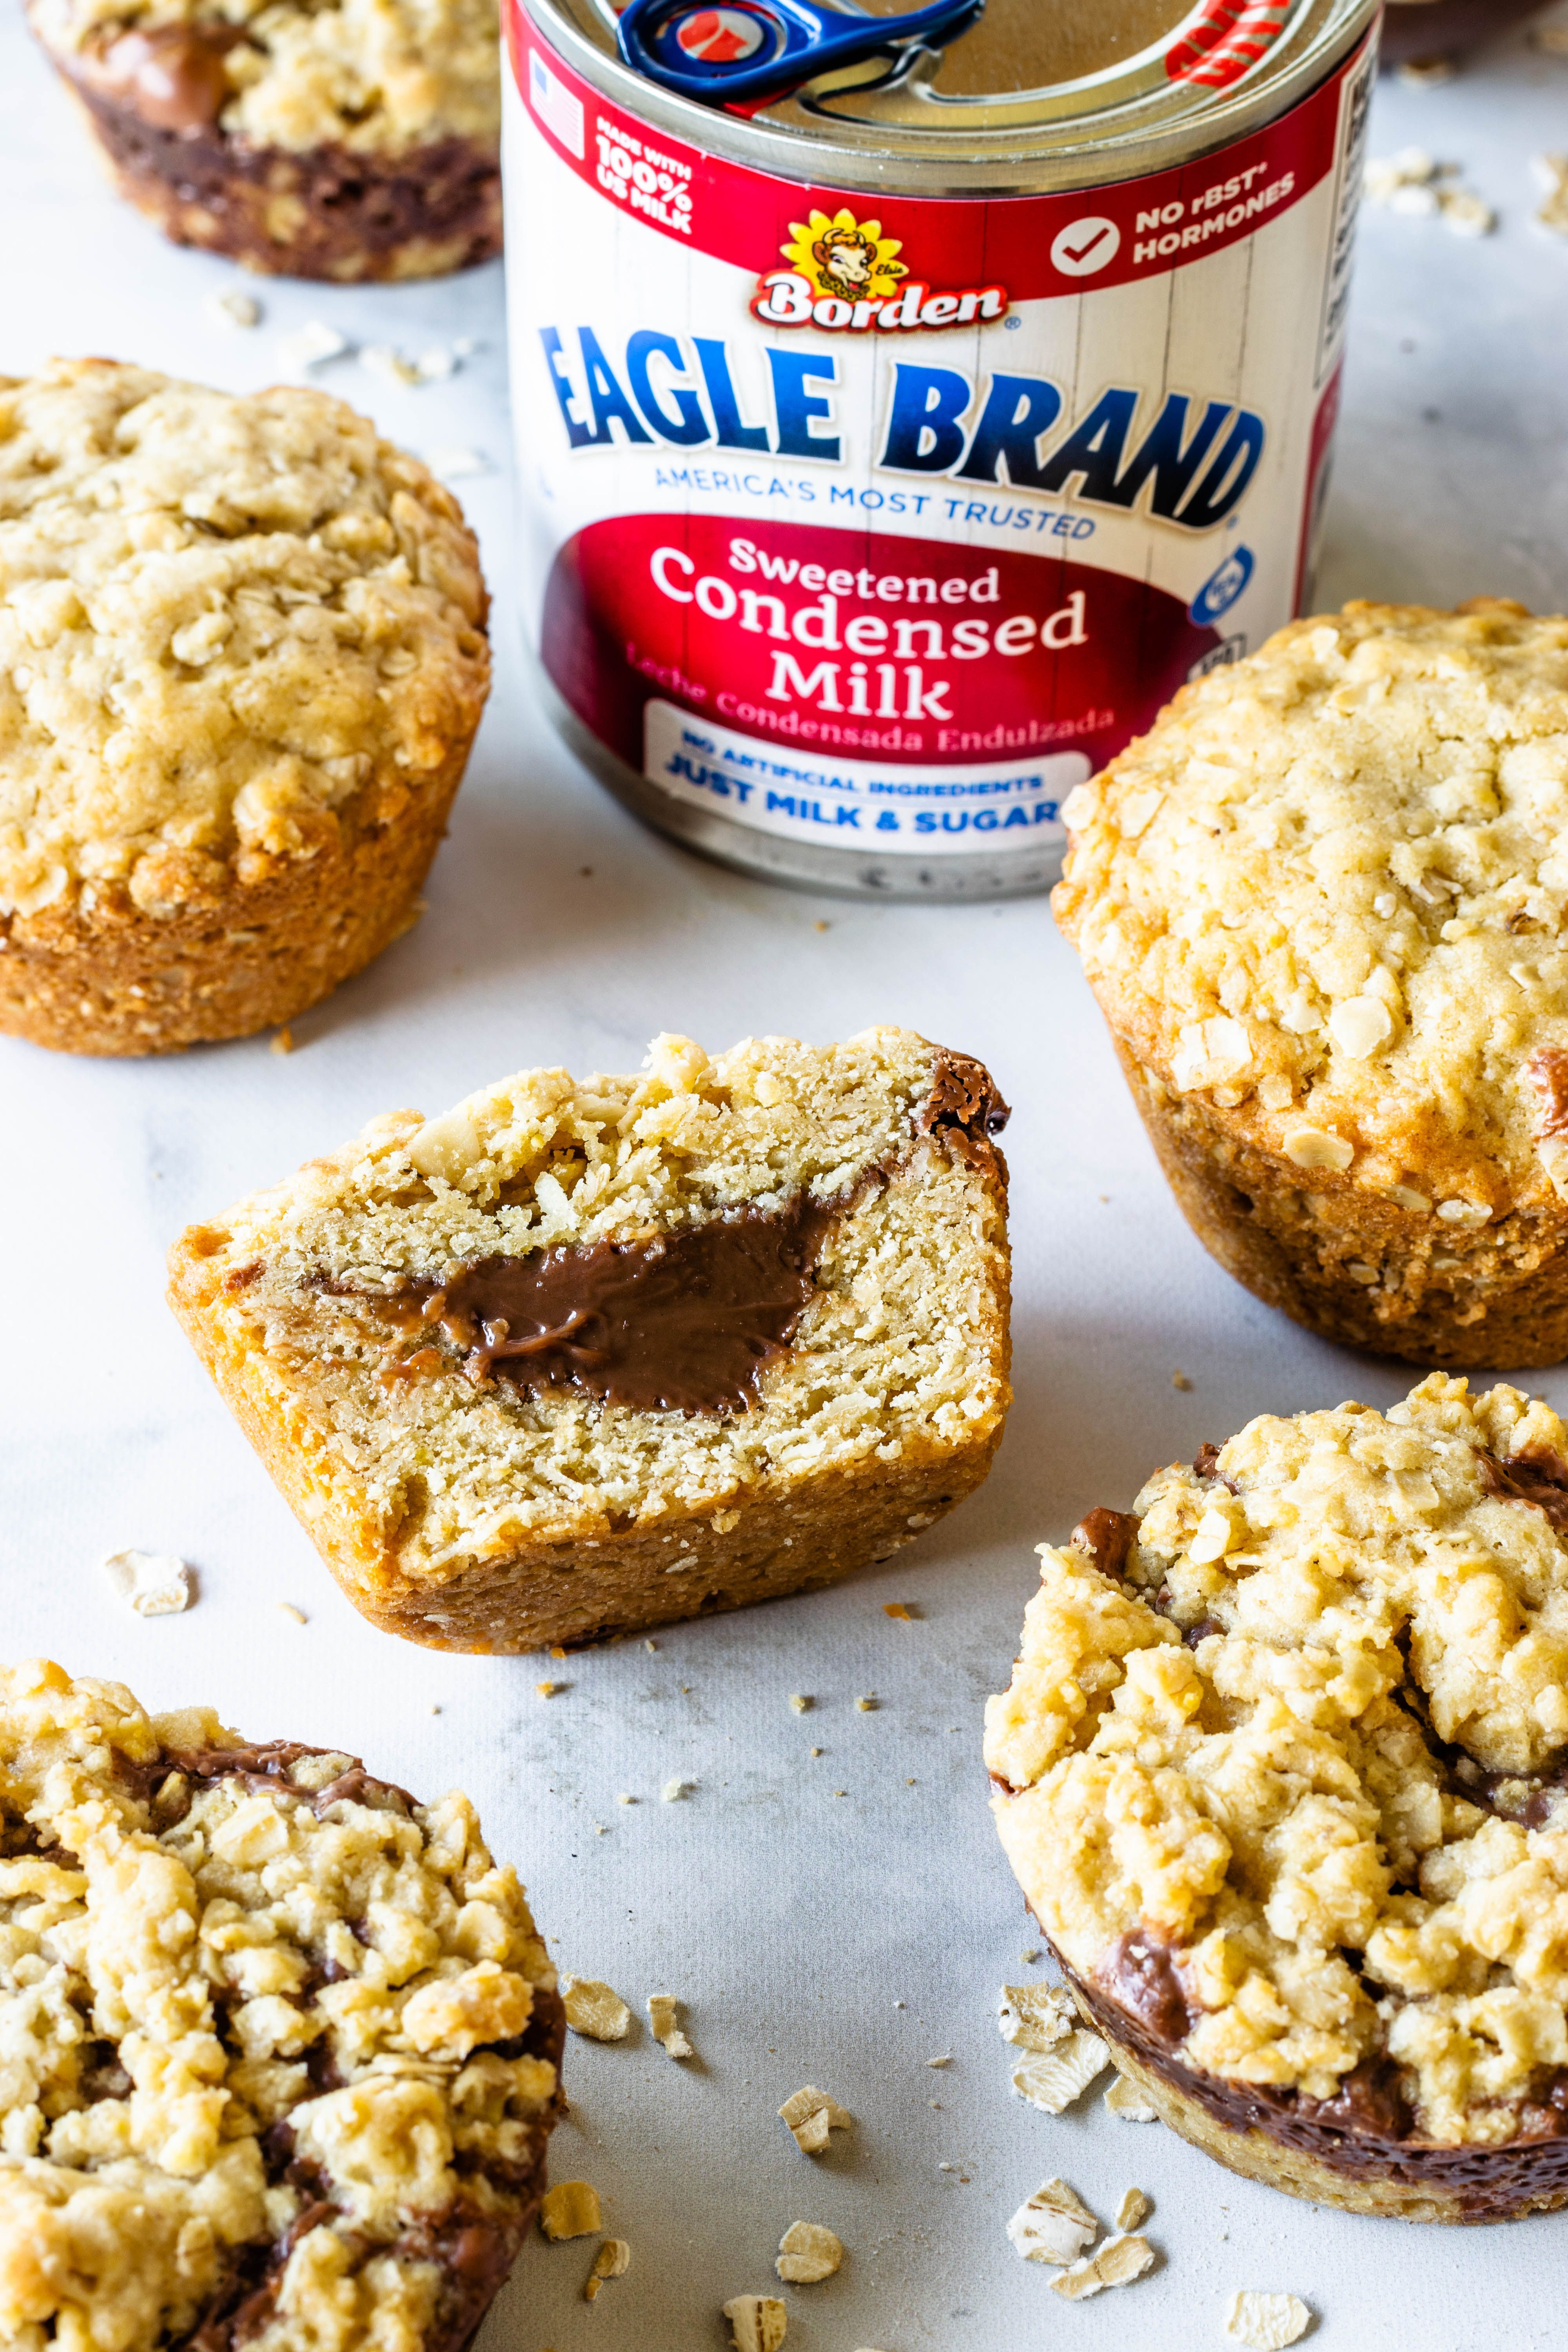 Baked Oatmeal Cups With Chocolate Filling Recipe In 2020 Condensed Milk Recipes Desserts Condensed Milk Recipes Milk Recipes Dessert